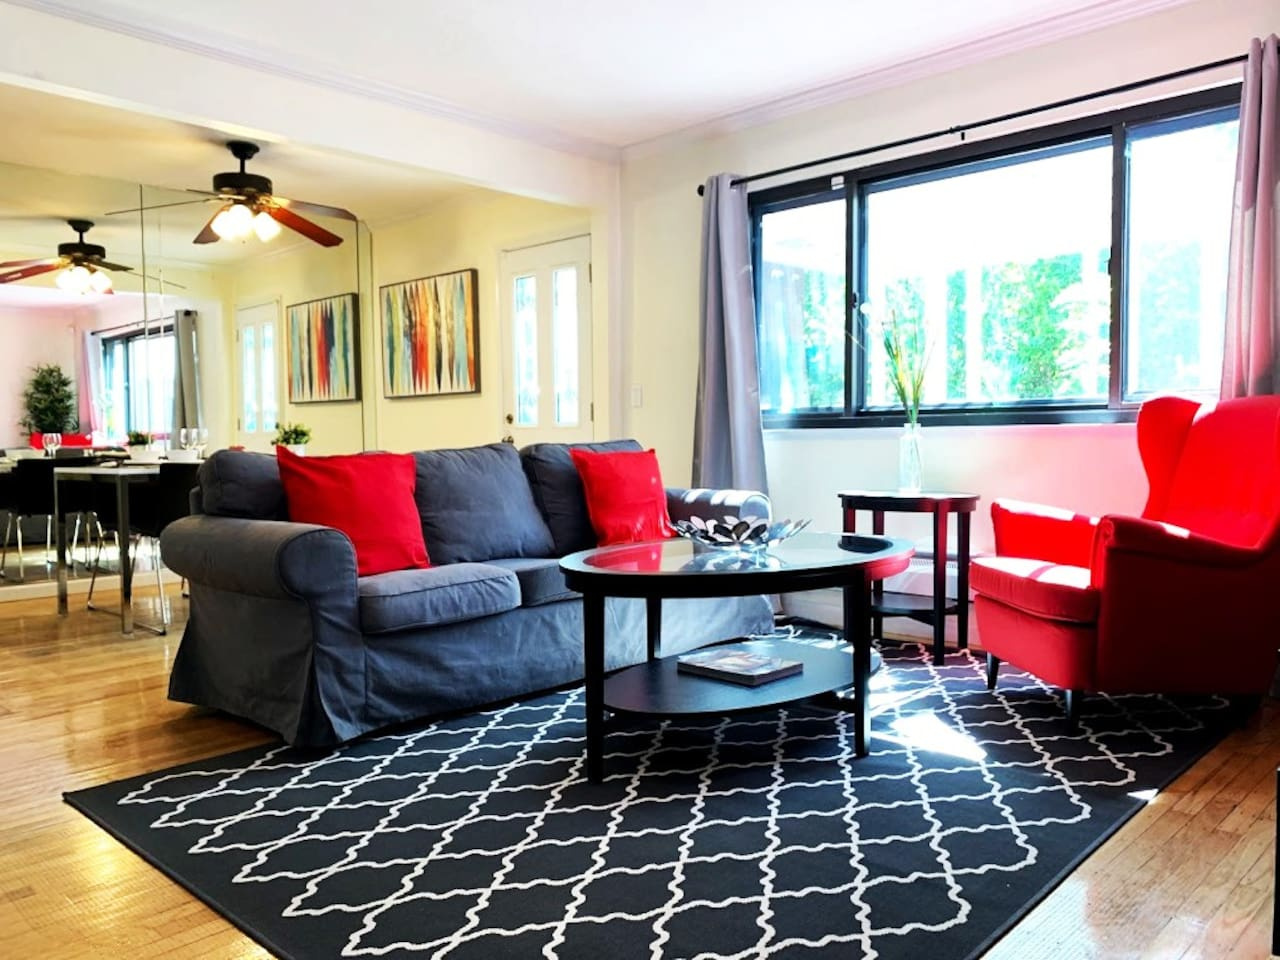 Welcome Guests! Our home has been decorated and furnished with your needs in mind to ensure you have the best possible stay. Sit back and enjoy the contemporary living room that includes a large sofa, wing chair, separate work area and large cable TV